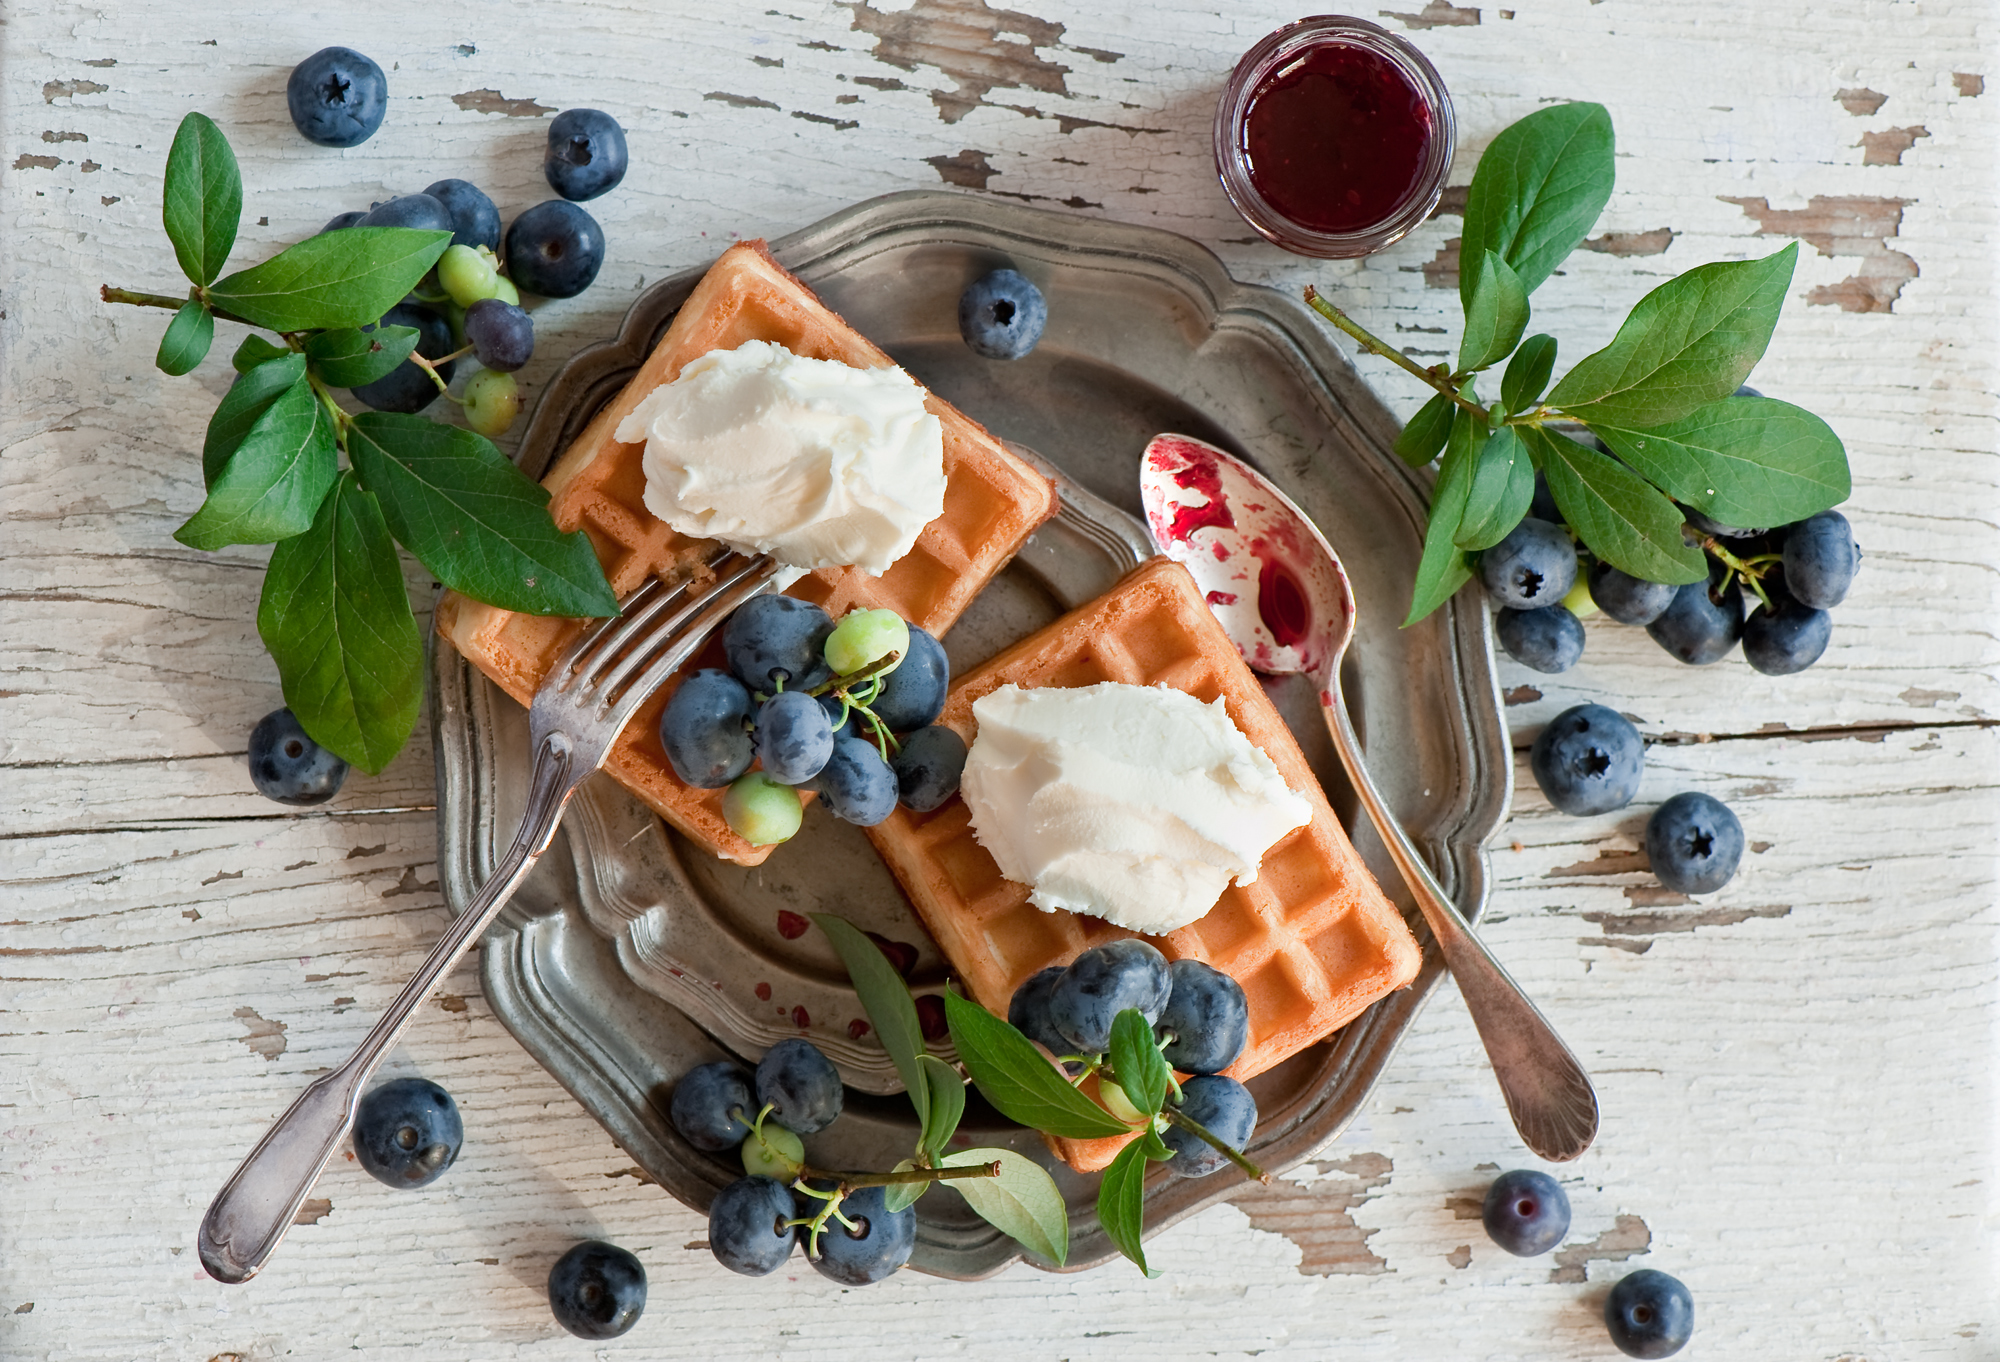 125608 download wallpaper Food, Vienna Waffles, Viennese Waffles, Waffles, Desert, Blueberry, Berries screensavers and pictures for free